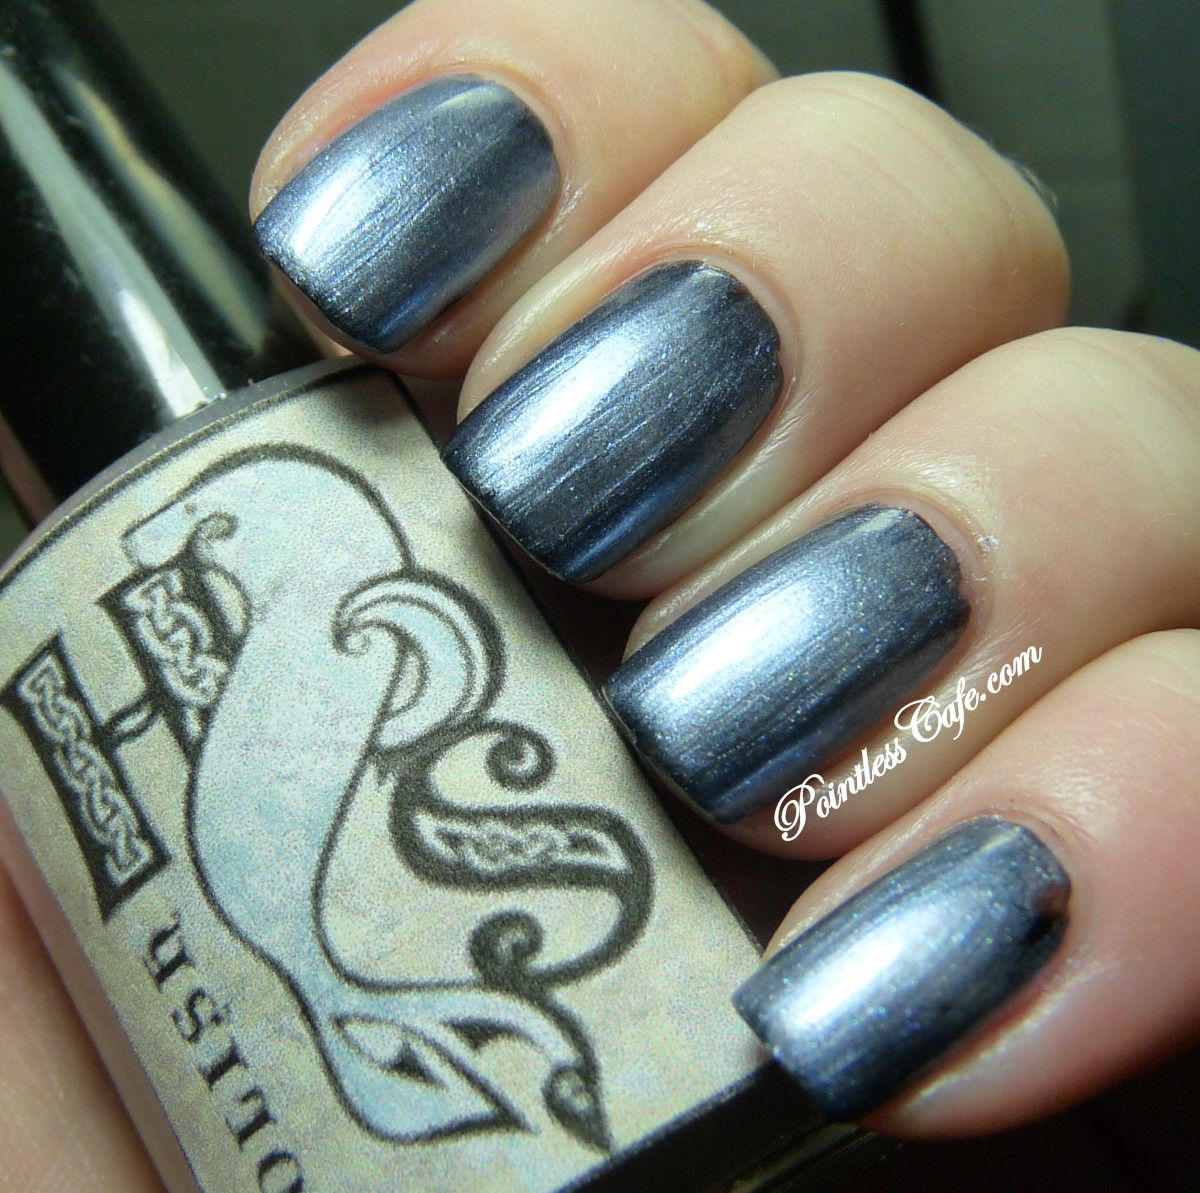 Hebridean Sprite Beauty Chakora Beams (over black) - Swatches and Review | Pointless Cafe